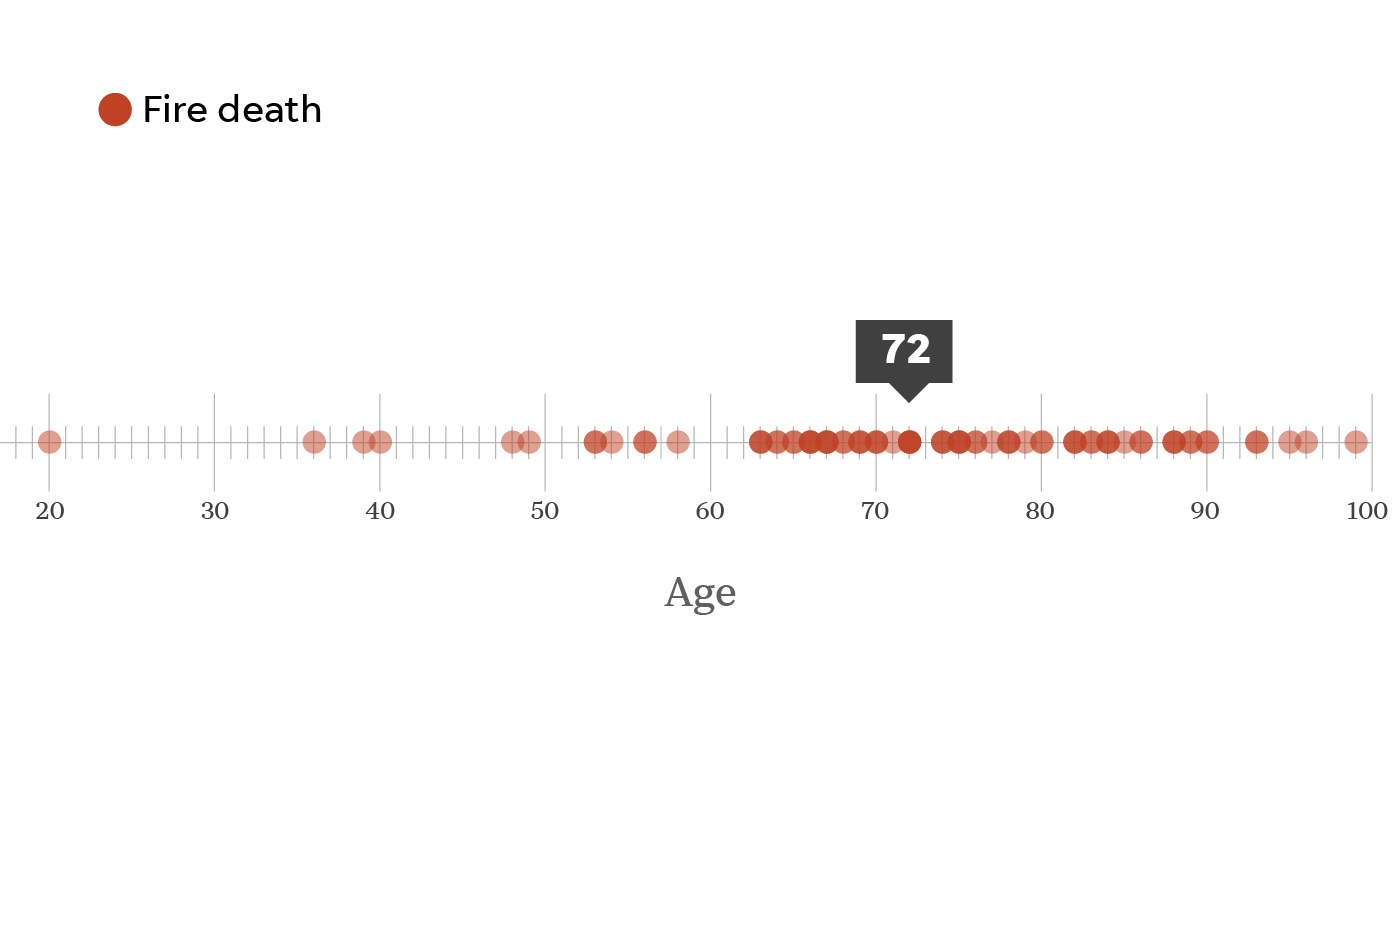 The median age of residents killed in Paradise, Calif. is 72.